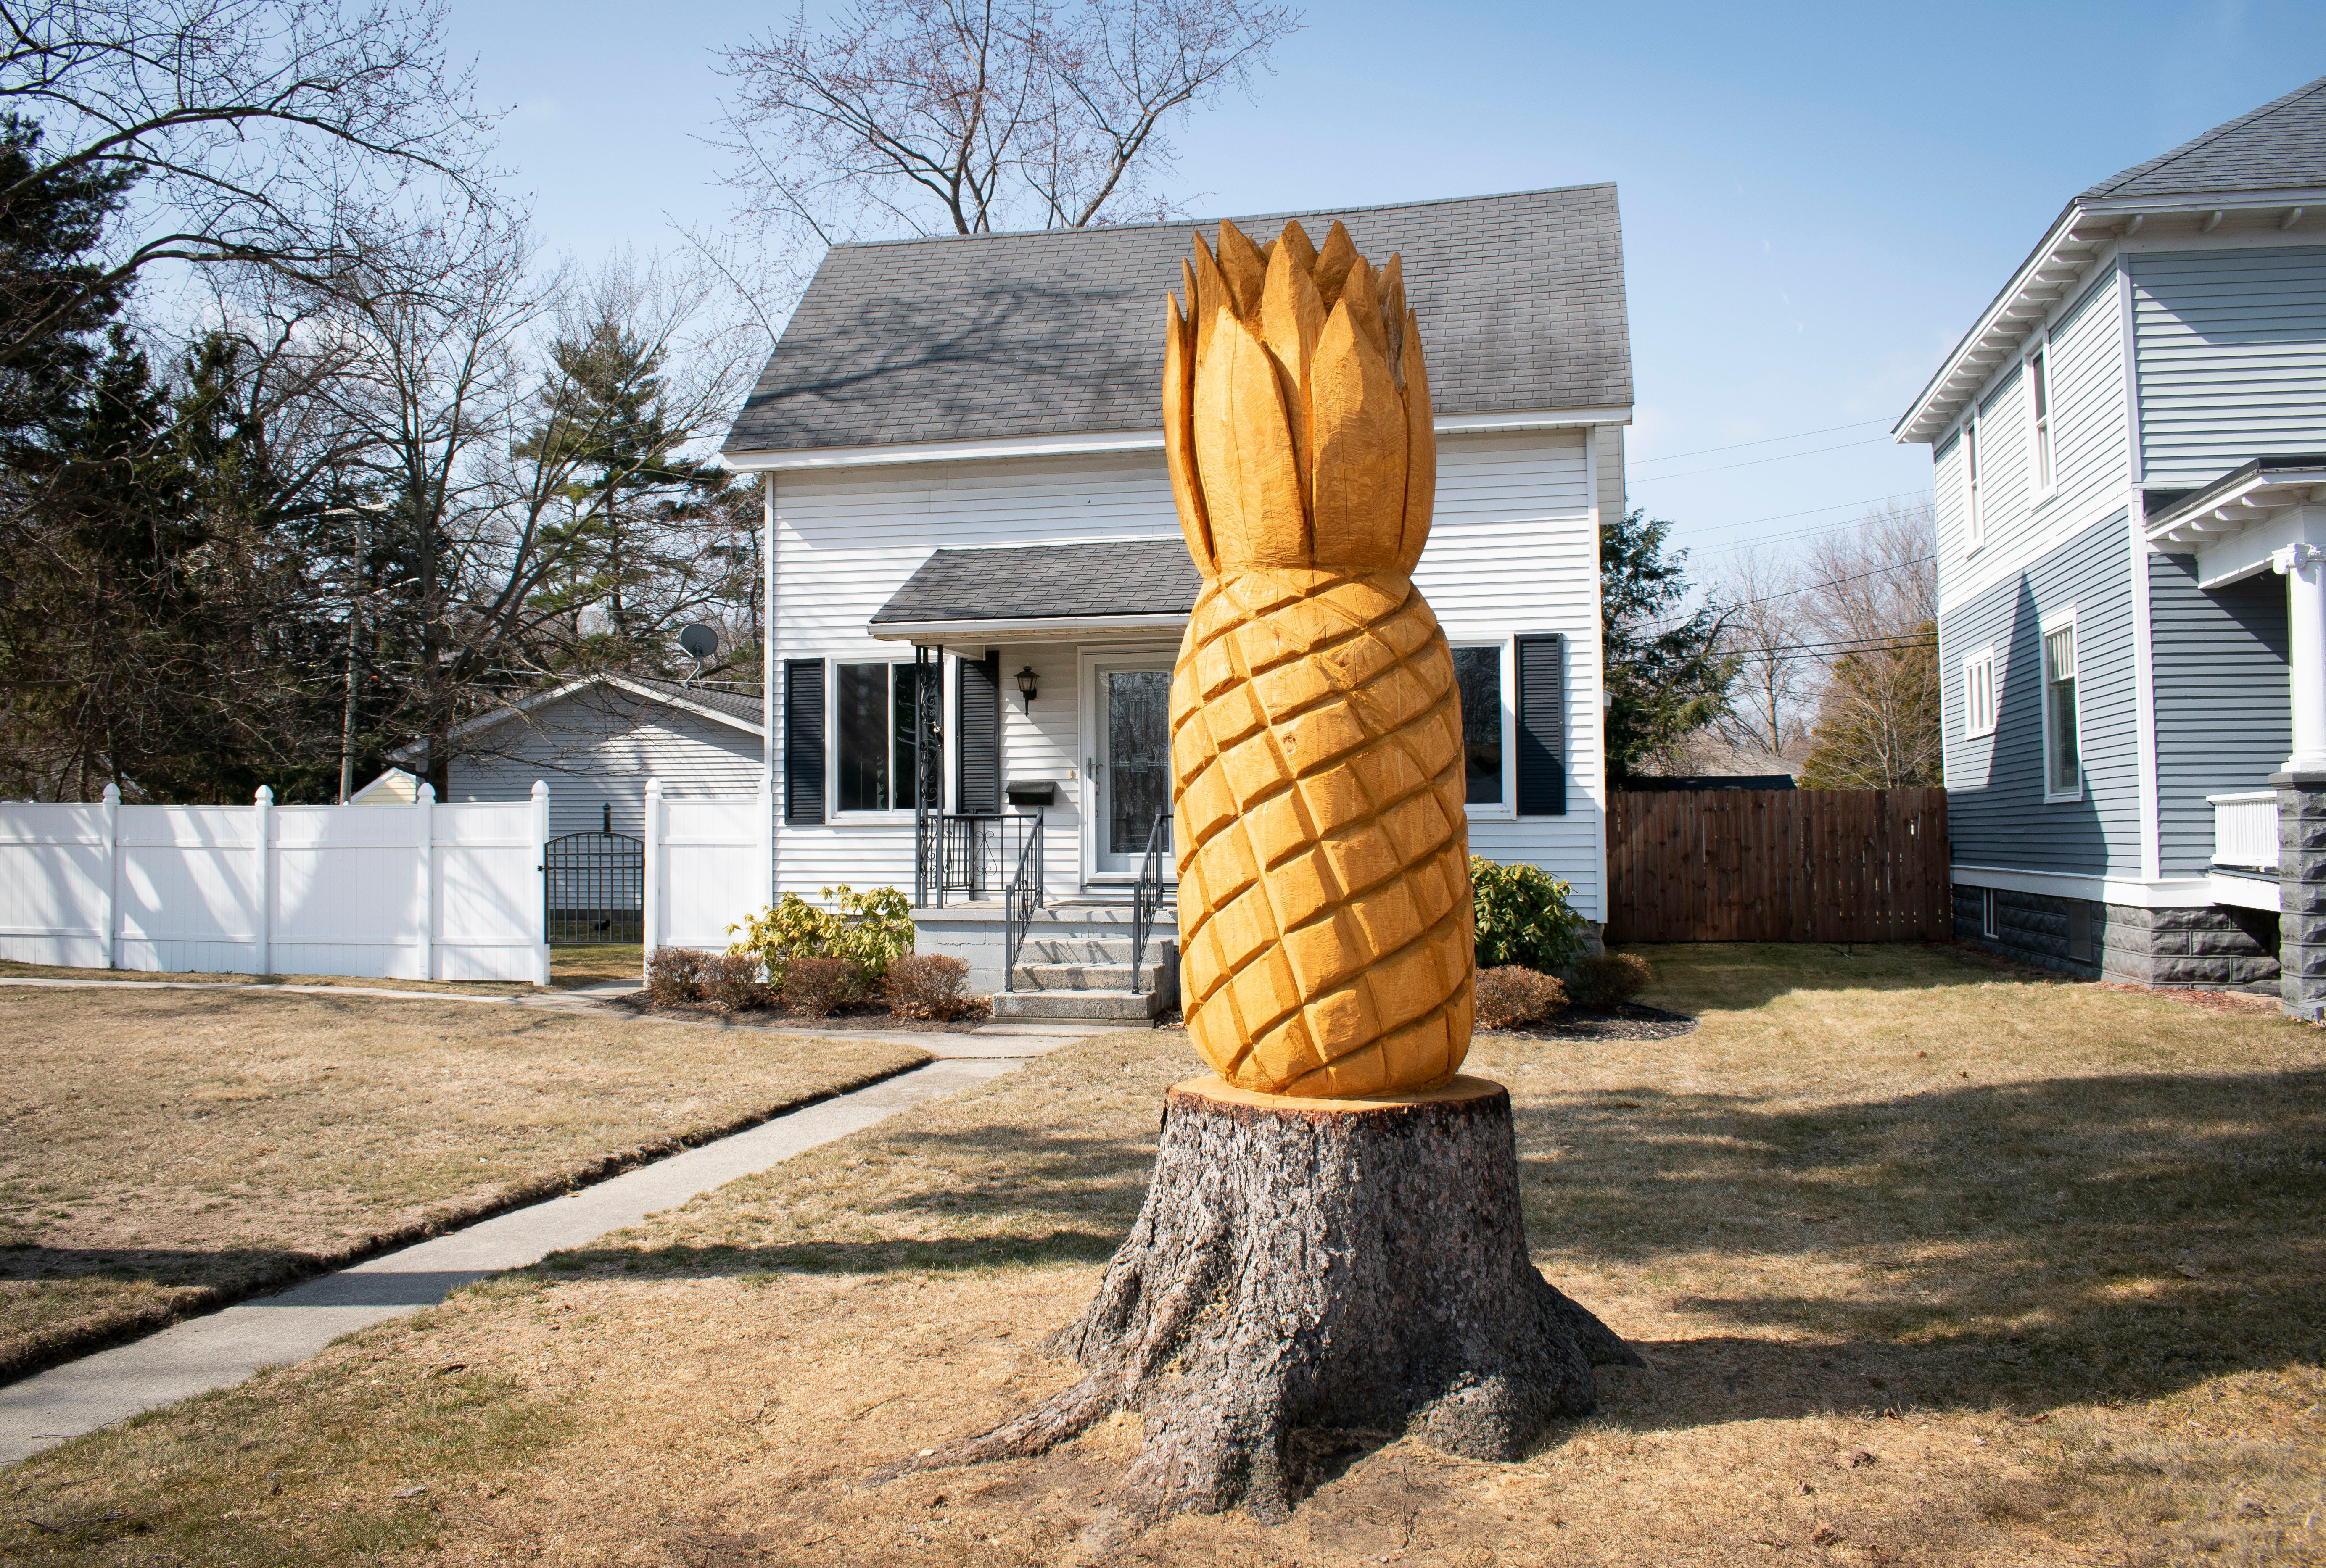 10-foot-tall pineapple carving becomes tourist attraction in Port Huron, Michigan